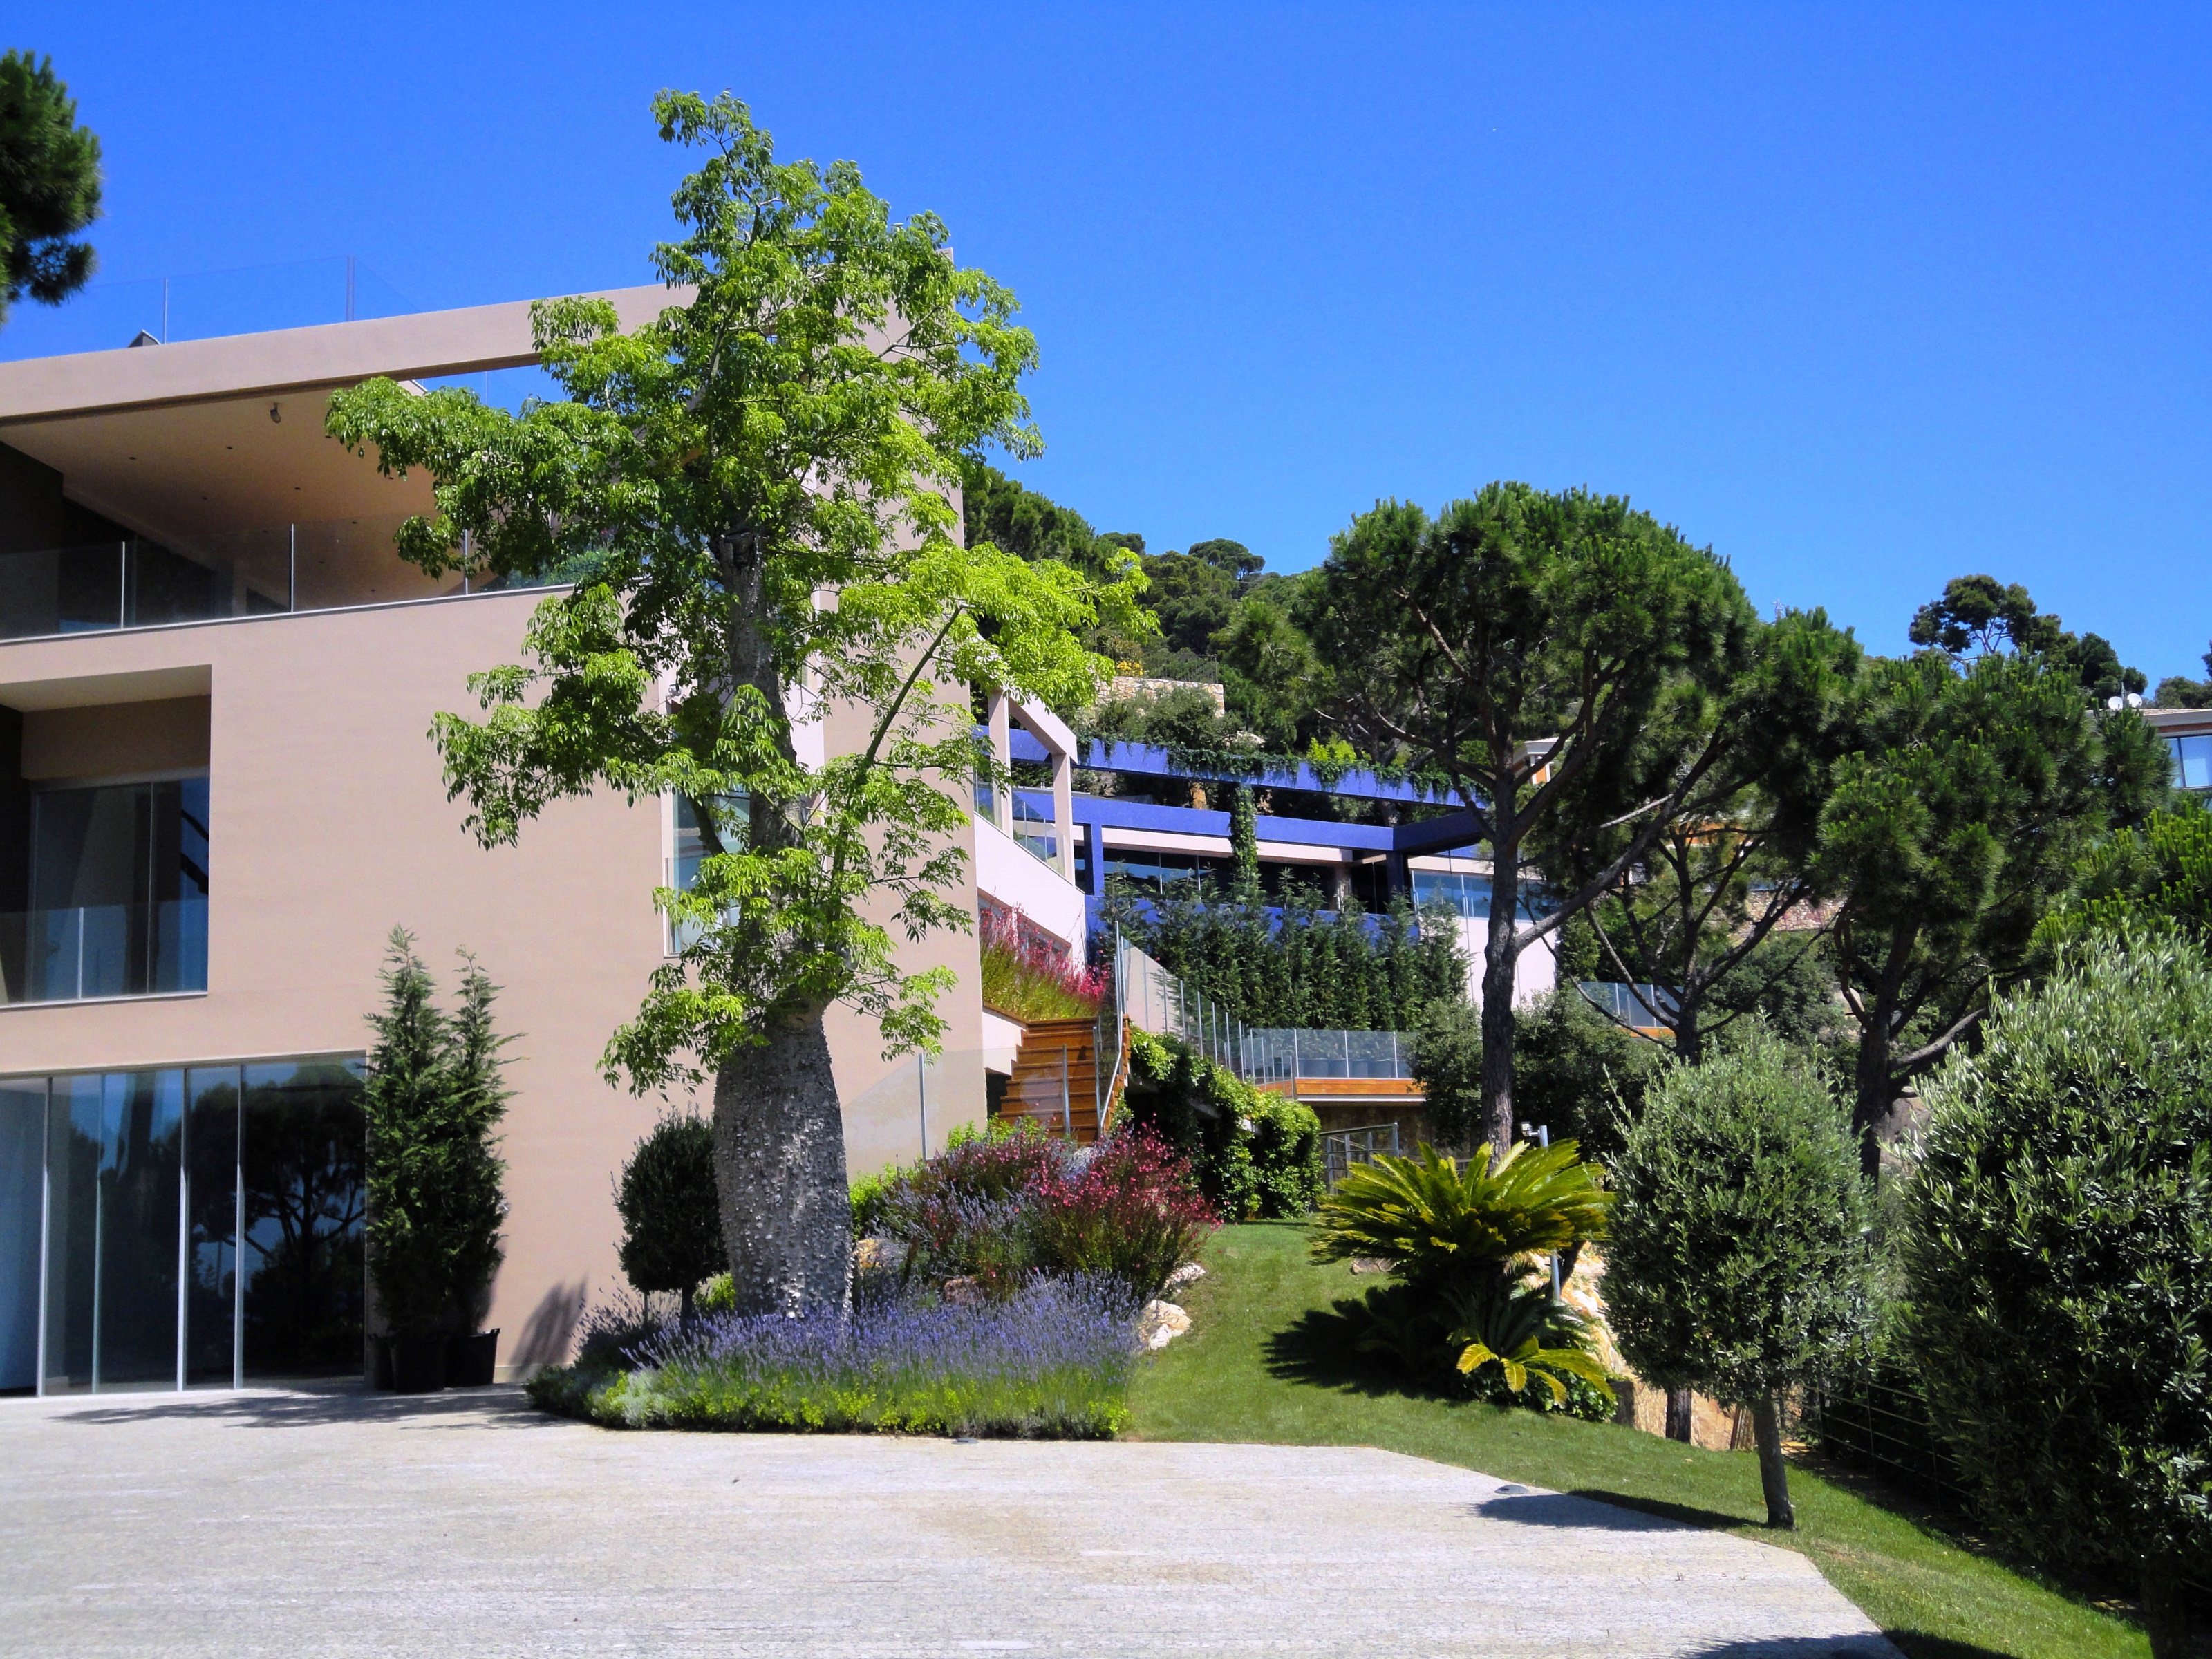 NICE HOUSE-THE BOTANICAL COLLECTION-SPAIN-PUNTA BRAVA.GIRONA.SPAIN